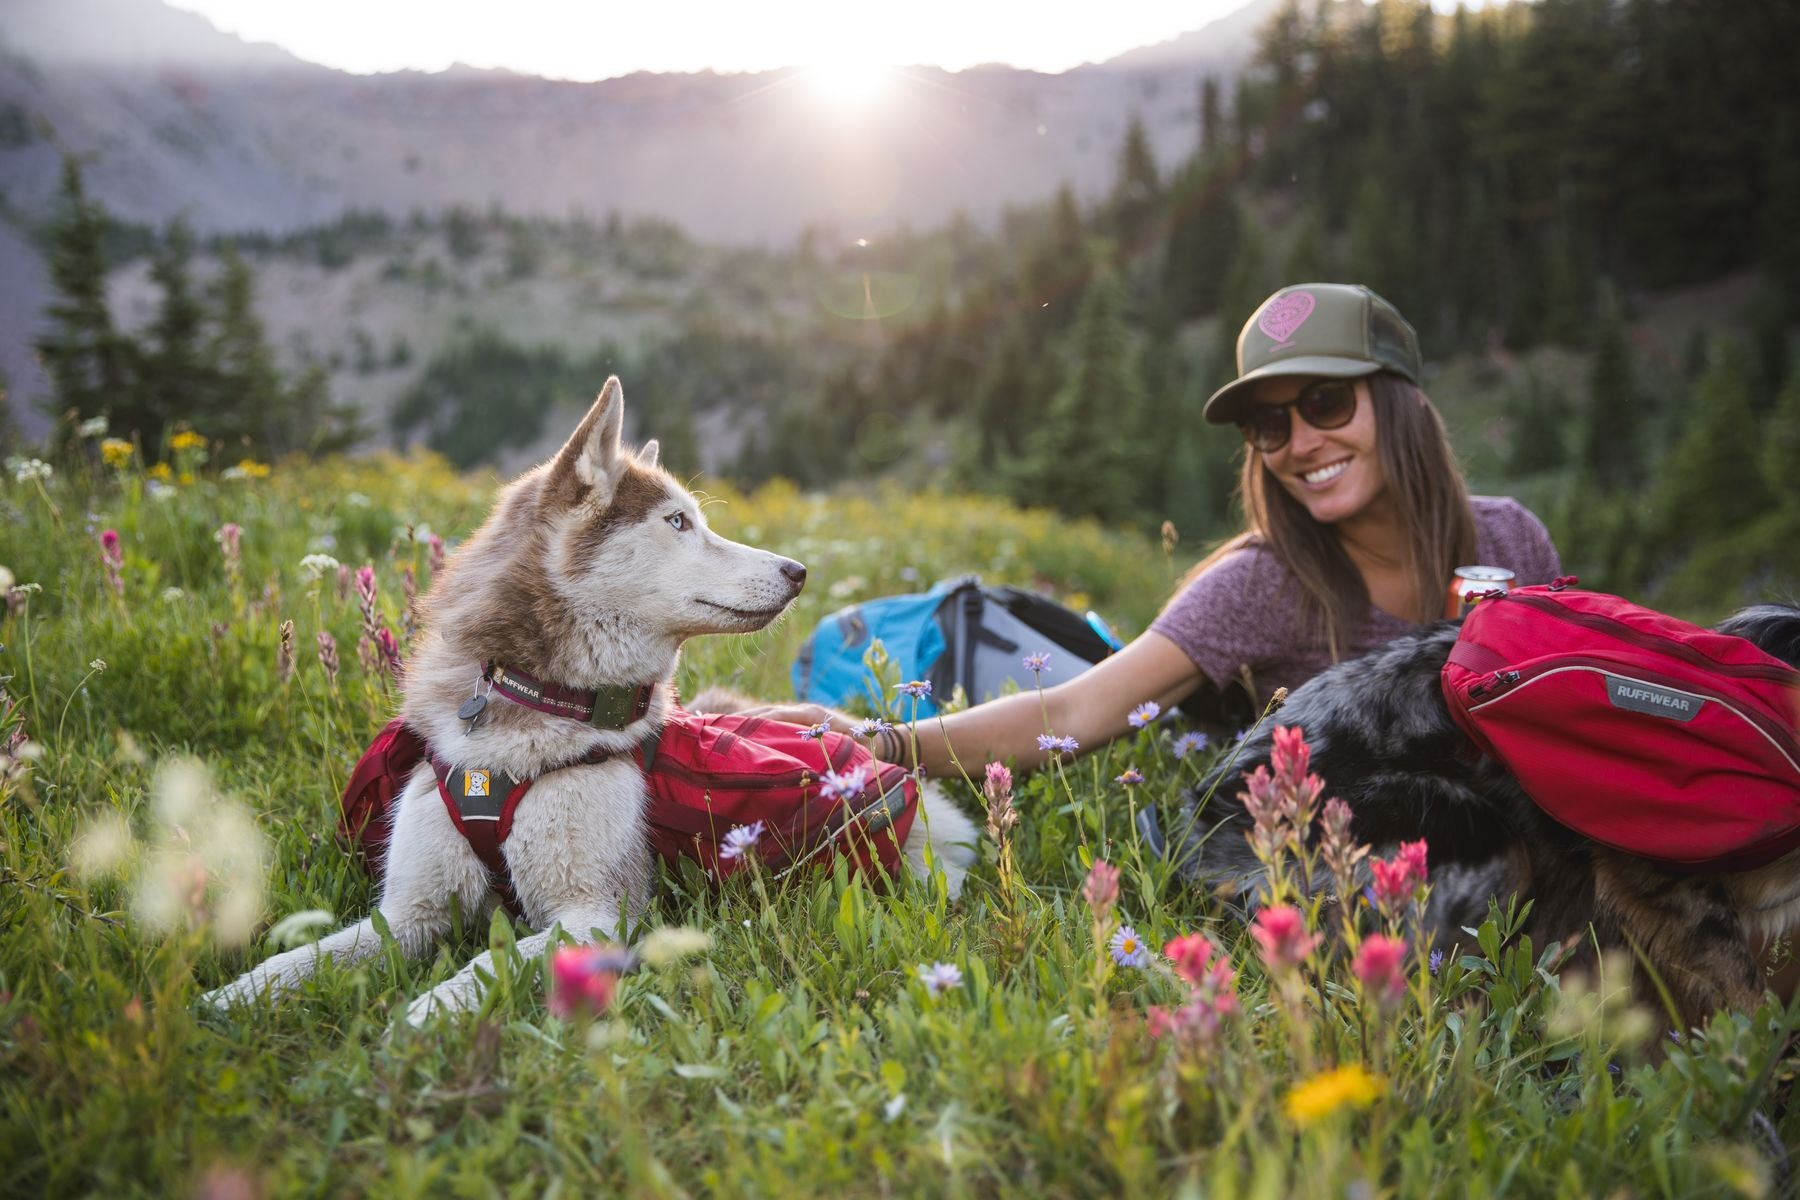 Dogs in palisades packs lay in wildflowers with human while backpacking.